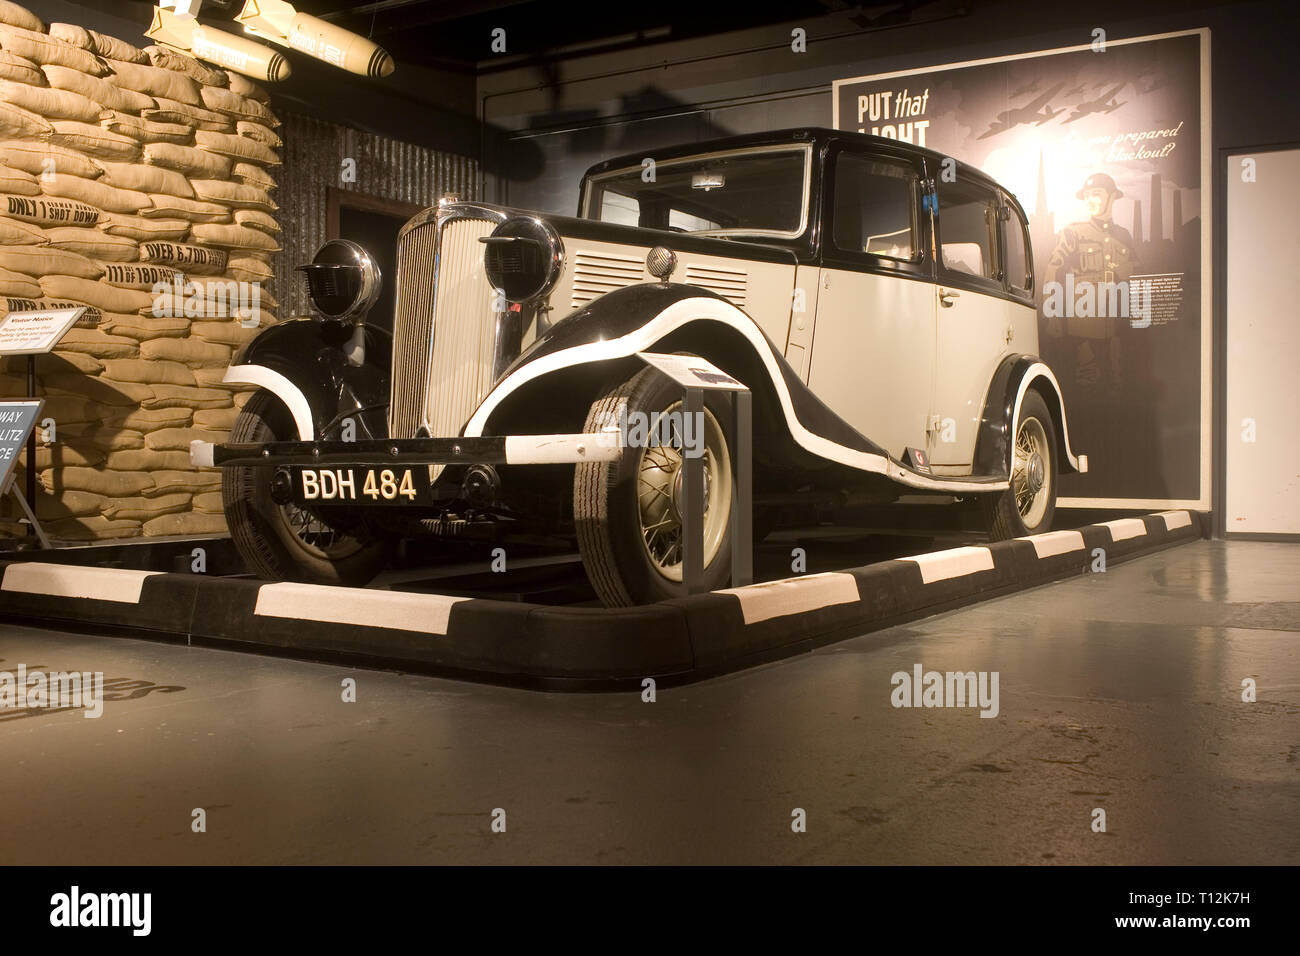 car adapted for blackout during world war II at Coventry transport museum - Stock Image